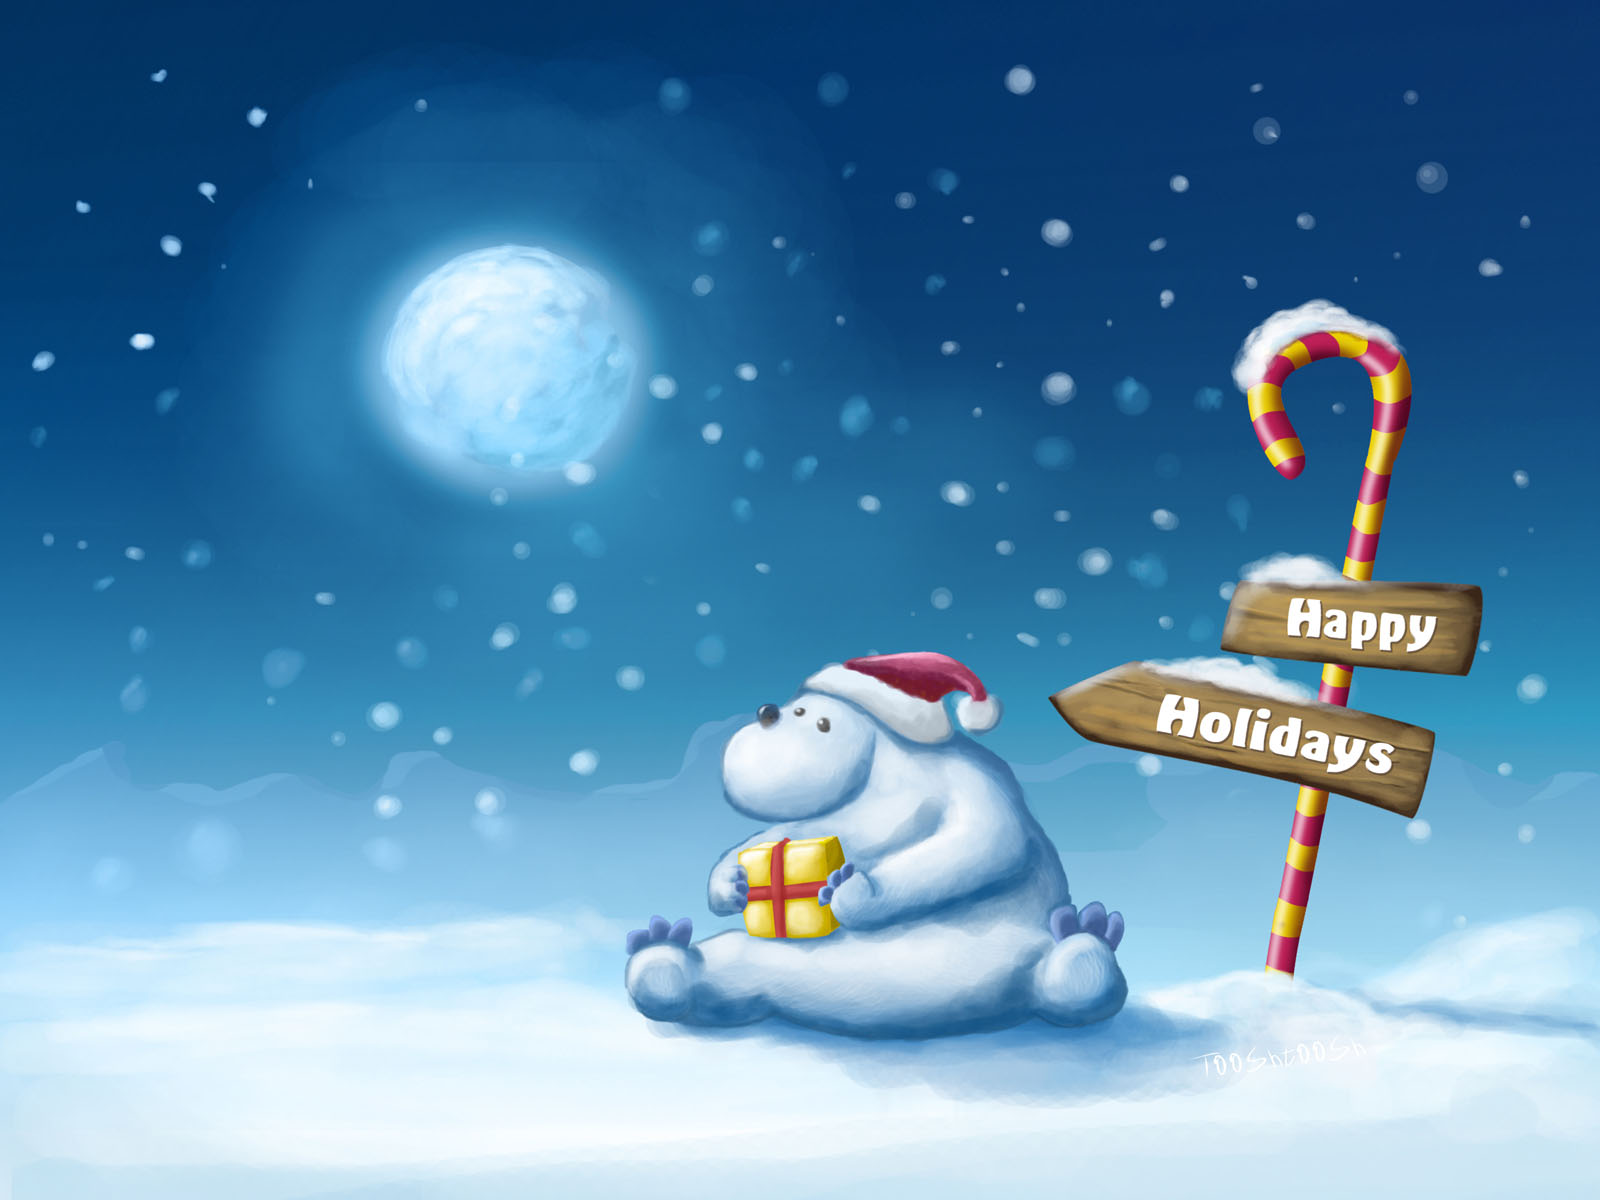 Wallpaper Includes a Cute and Emotional Bear Holding a Christmas 1600x1200